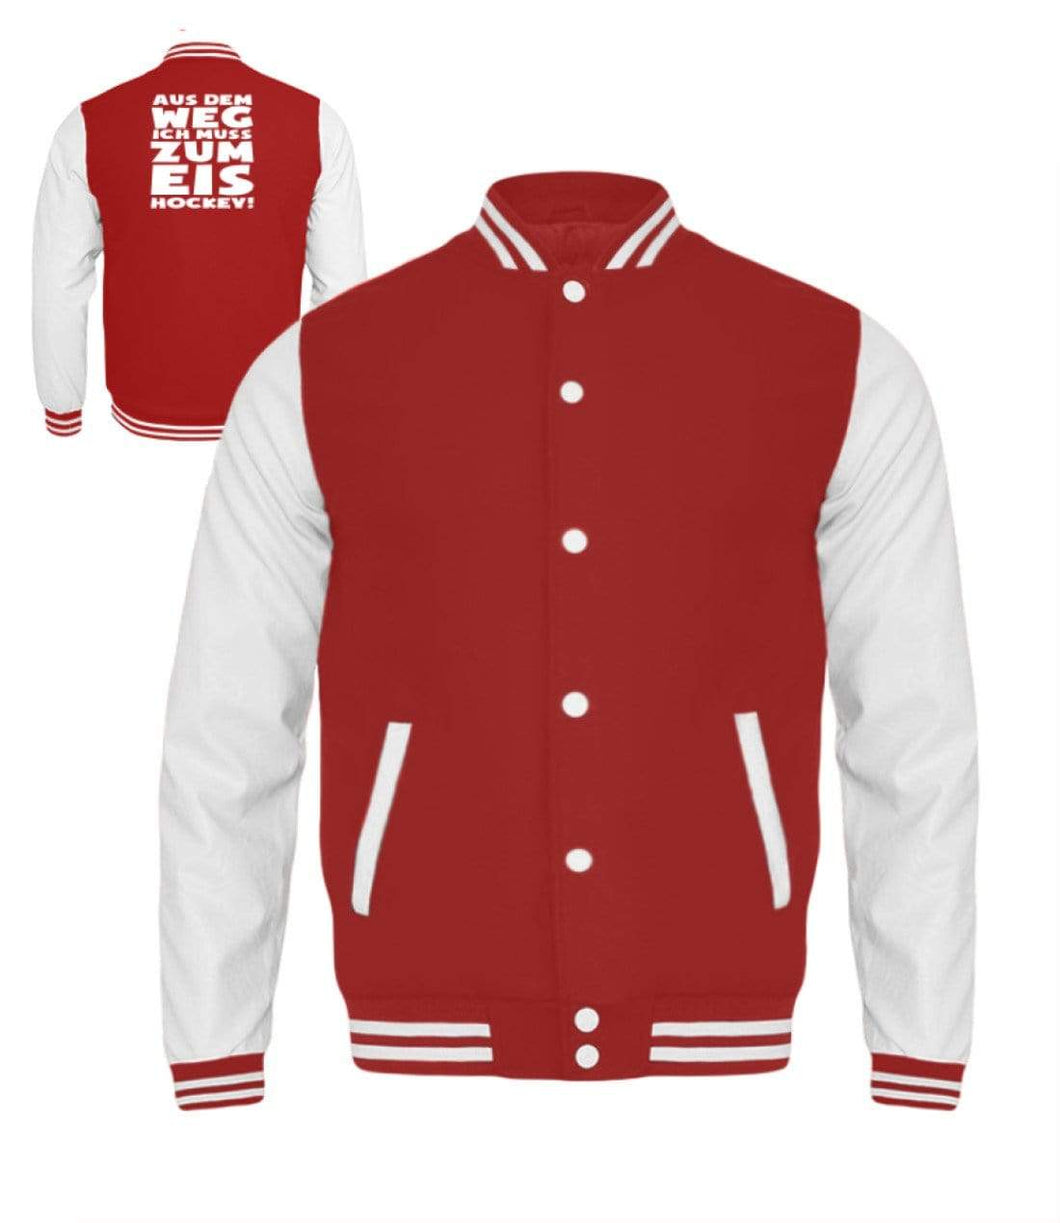 Kinder Collegejacke Fire Red-White / 3/4 (98/104) Eishockeyfan: ...ich muss zum Eishockey!  - Kinder College Sweatjacke (4378894106676)